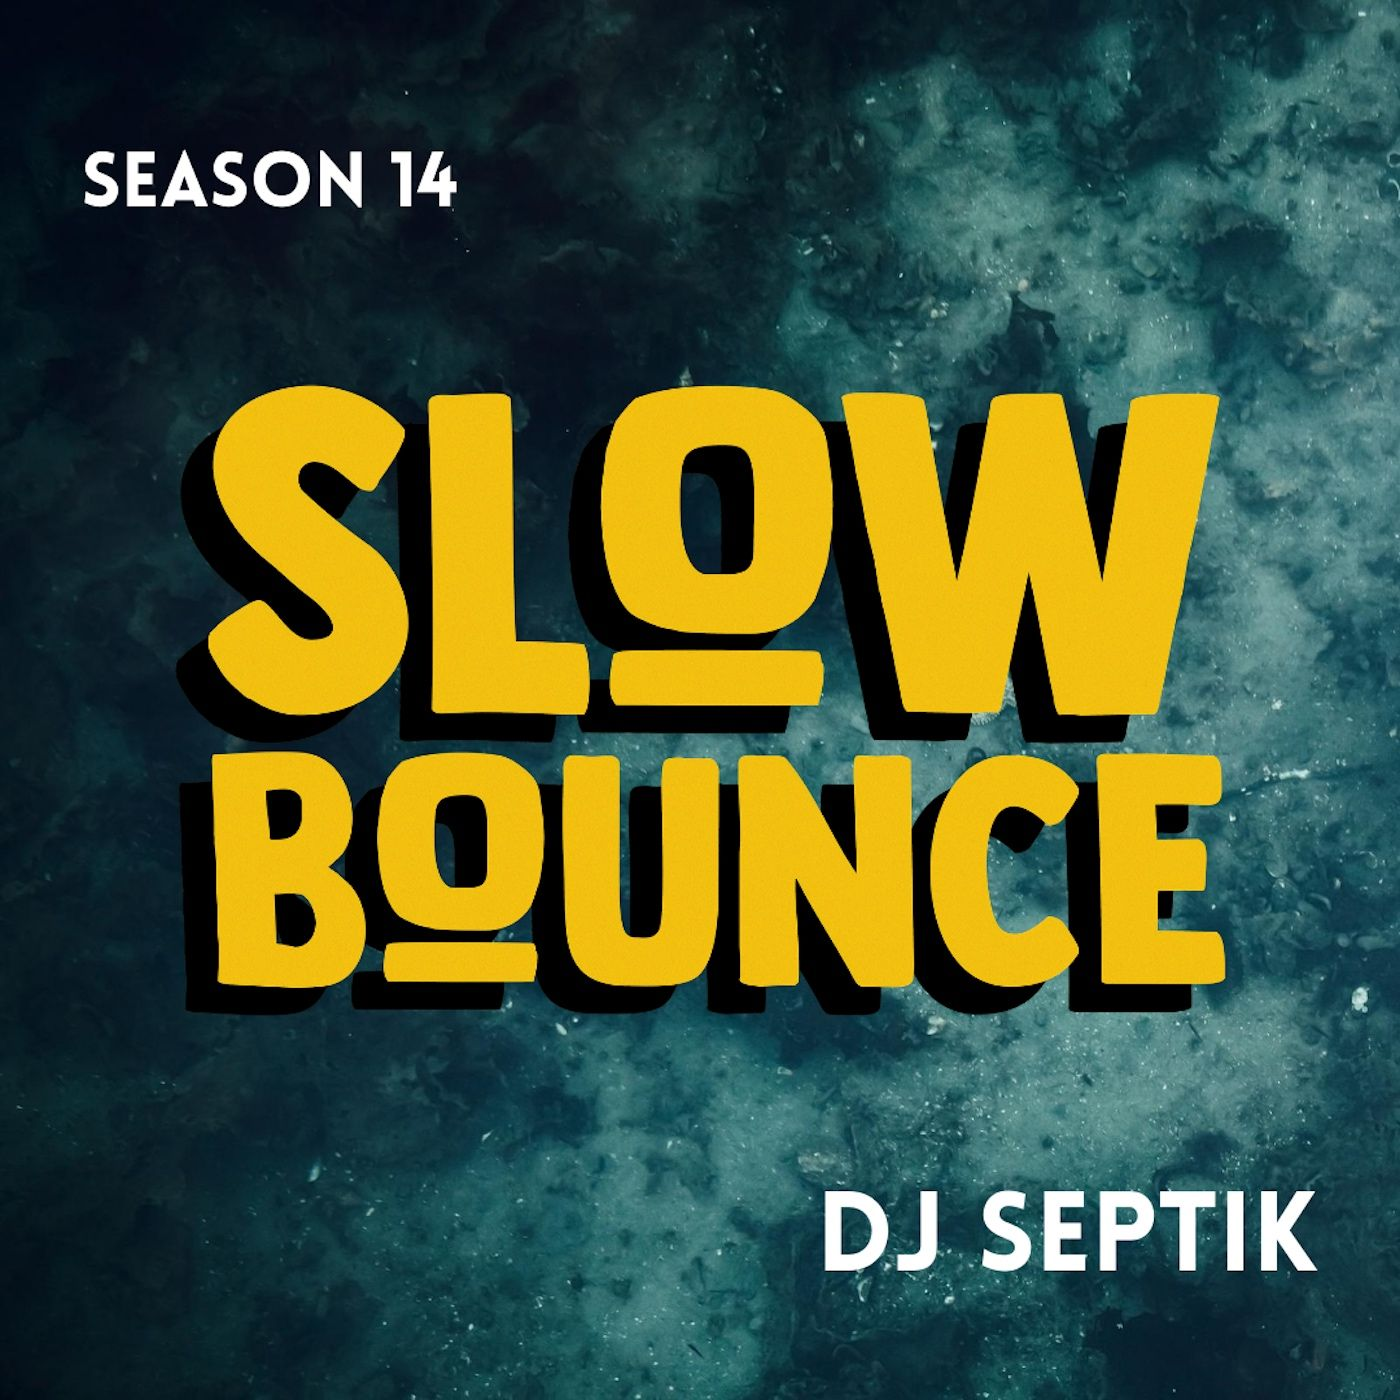 Bigupradio.com SLOWBOUNCE - Future Dancehall & Tropical Bass